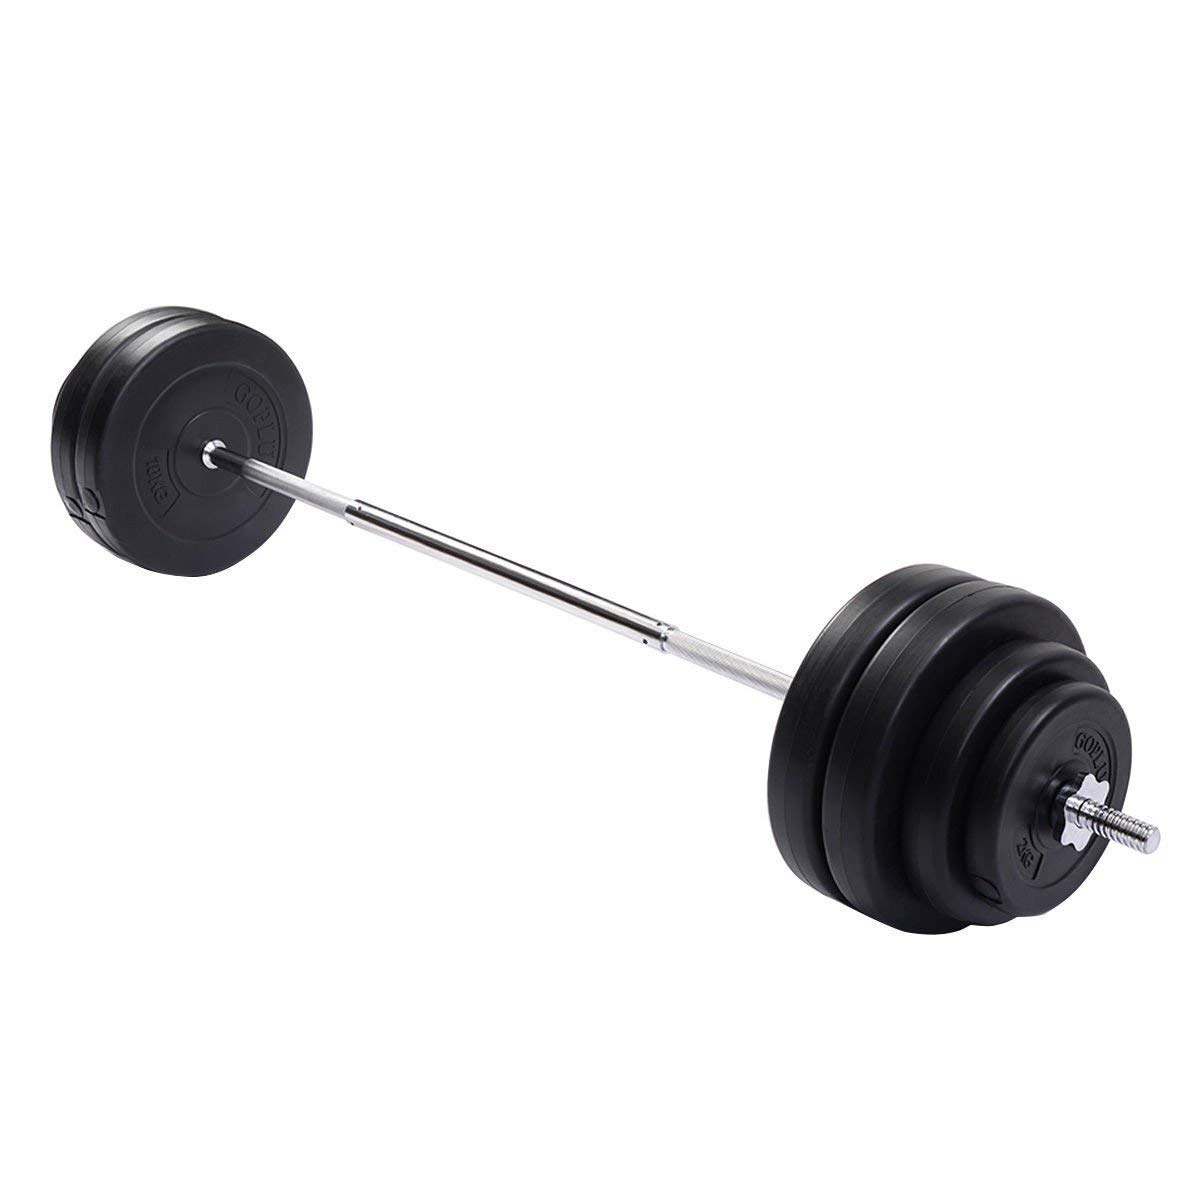 Goplus Barbell Dumbbell Weights Set 132 Lbs Lifting Exercise Full Body Workout for Gym, Home Adjustable Weight Bar